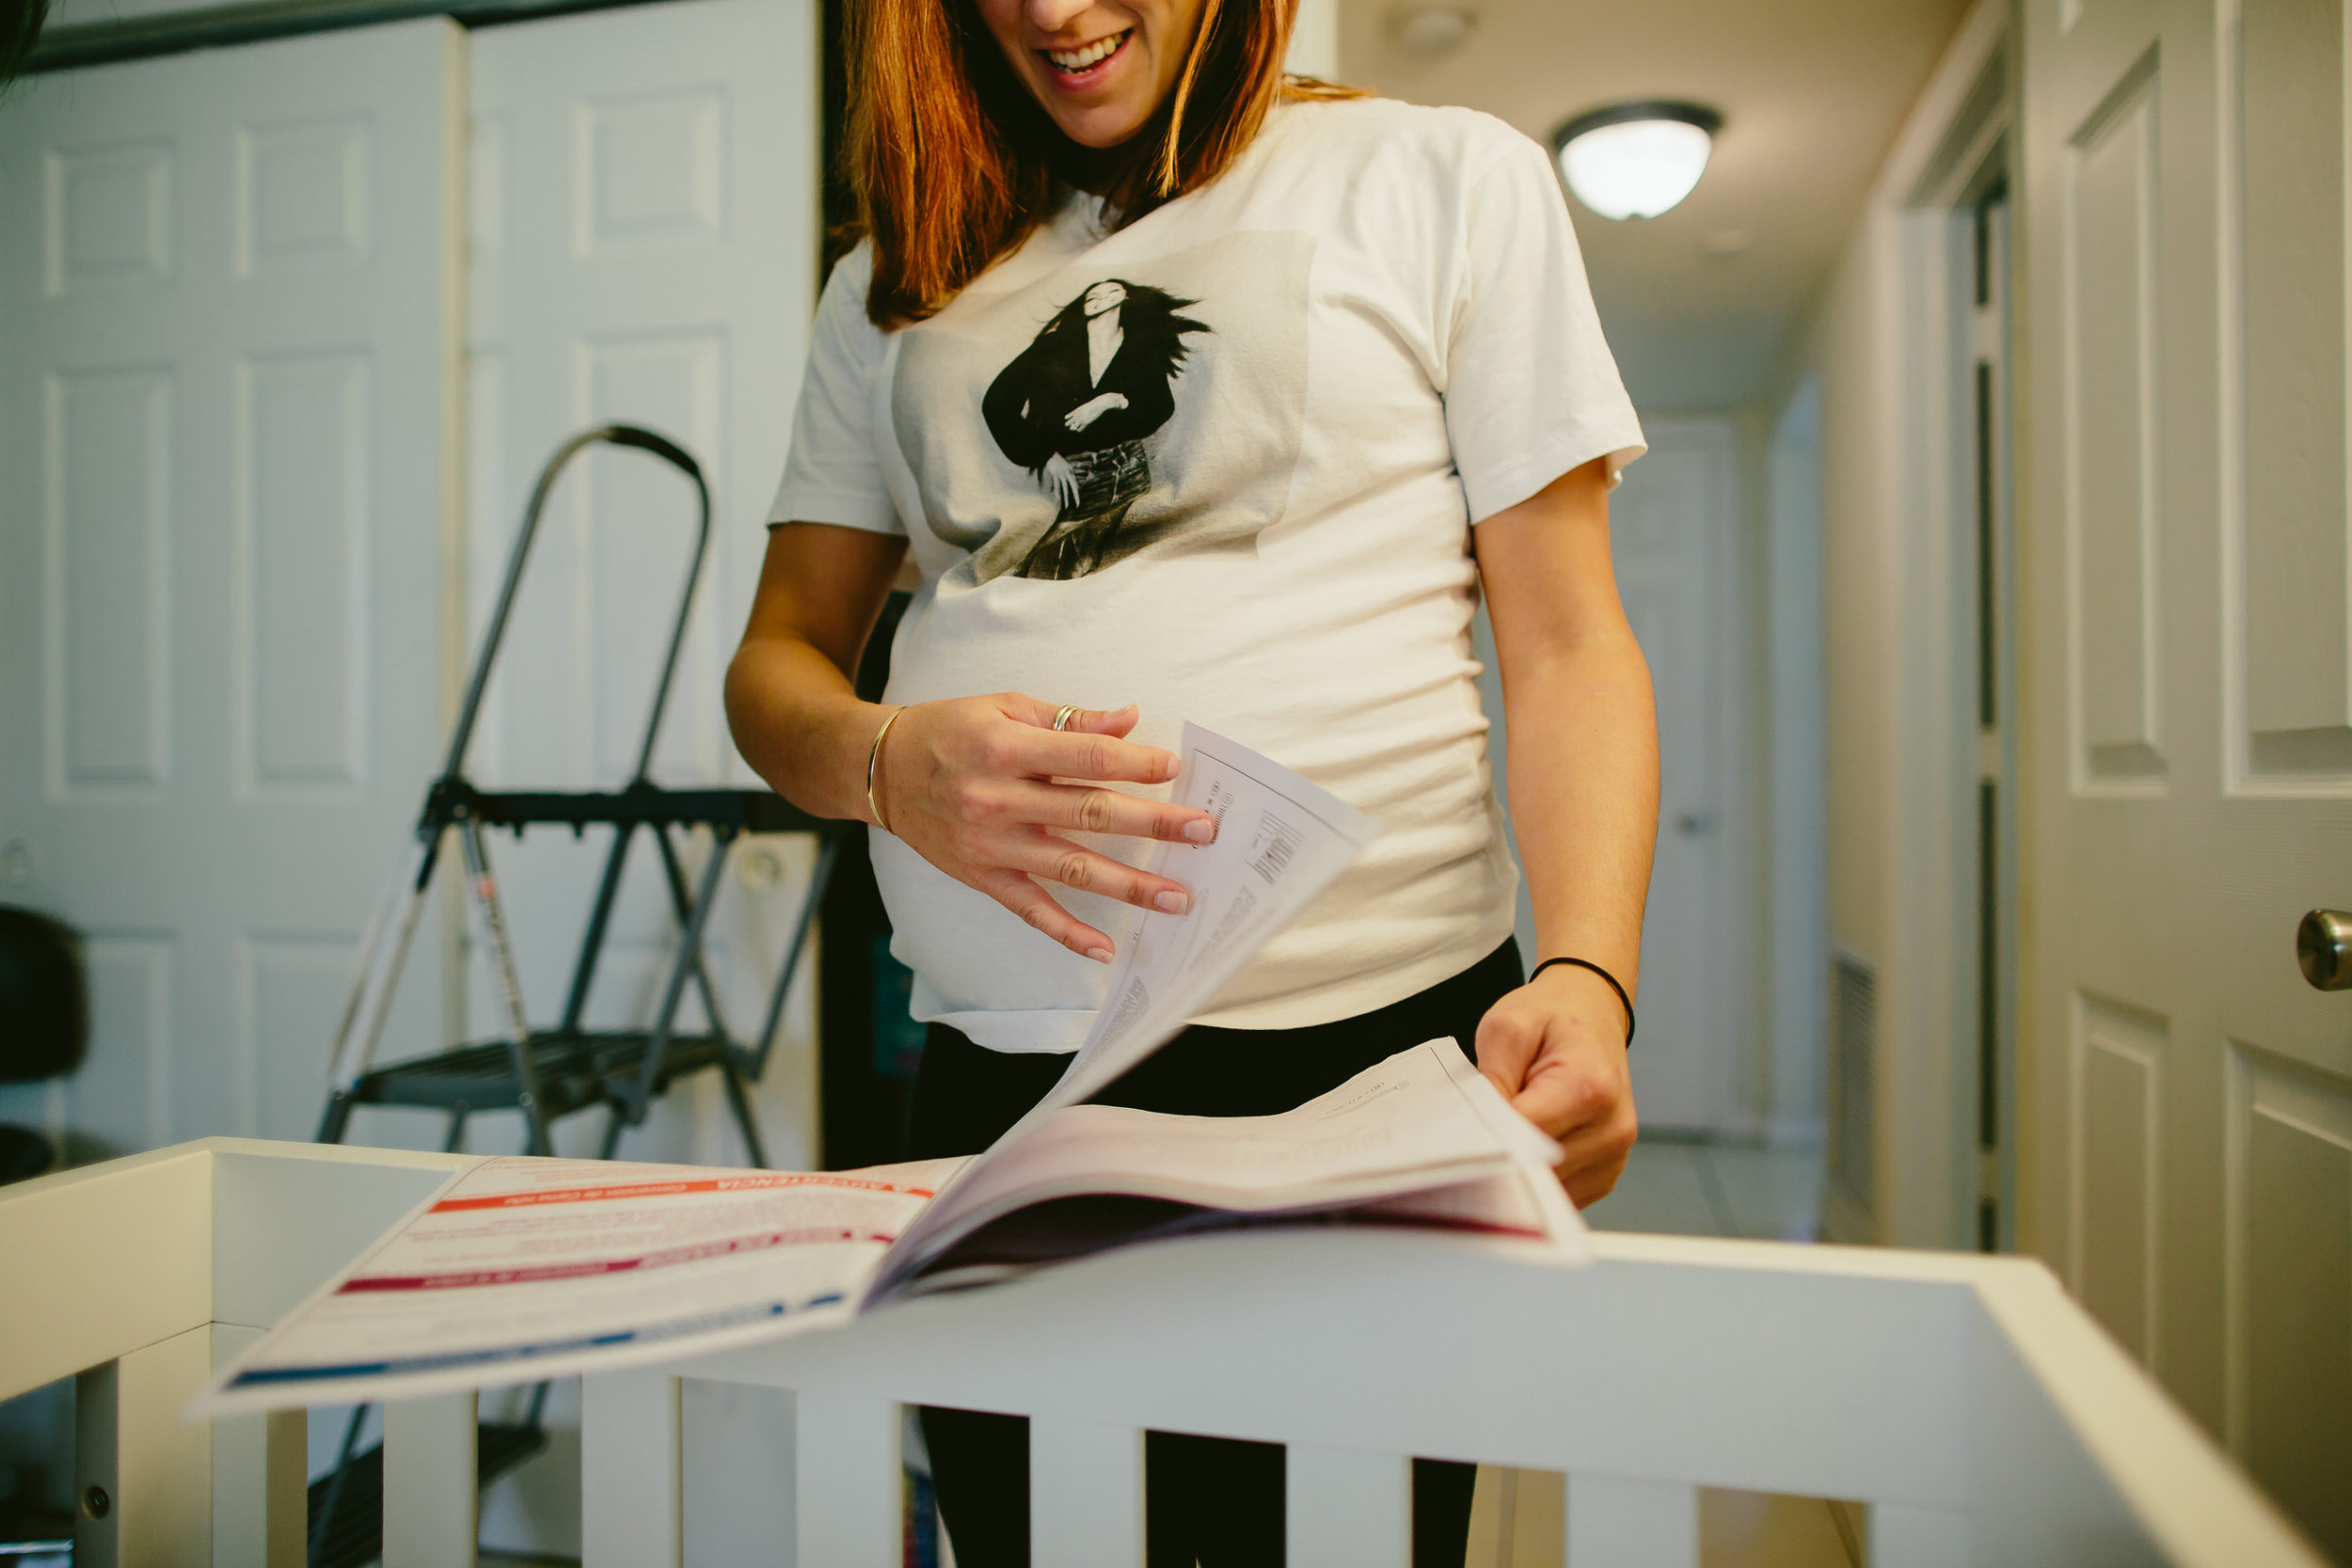 documentary_pregnancy_session_miami_florida_steph_lynn_photo-23.jpg